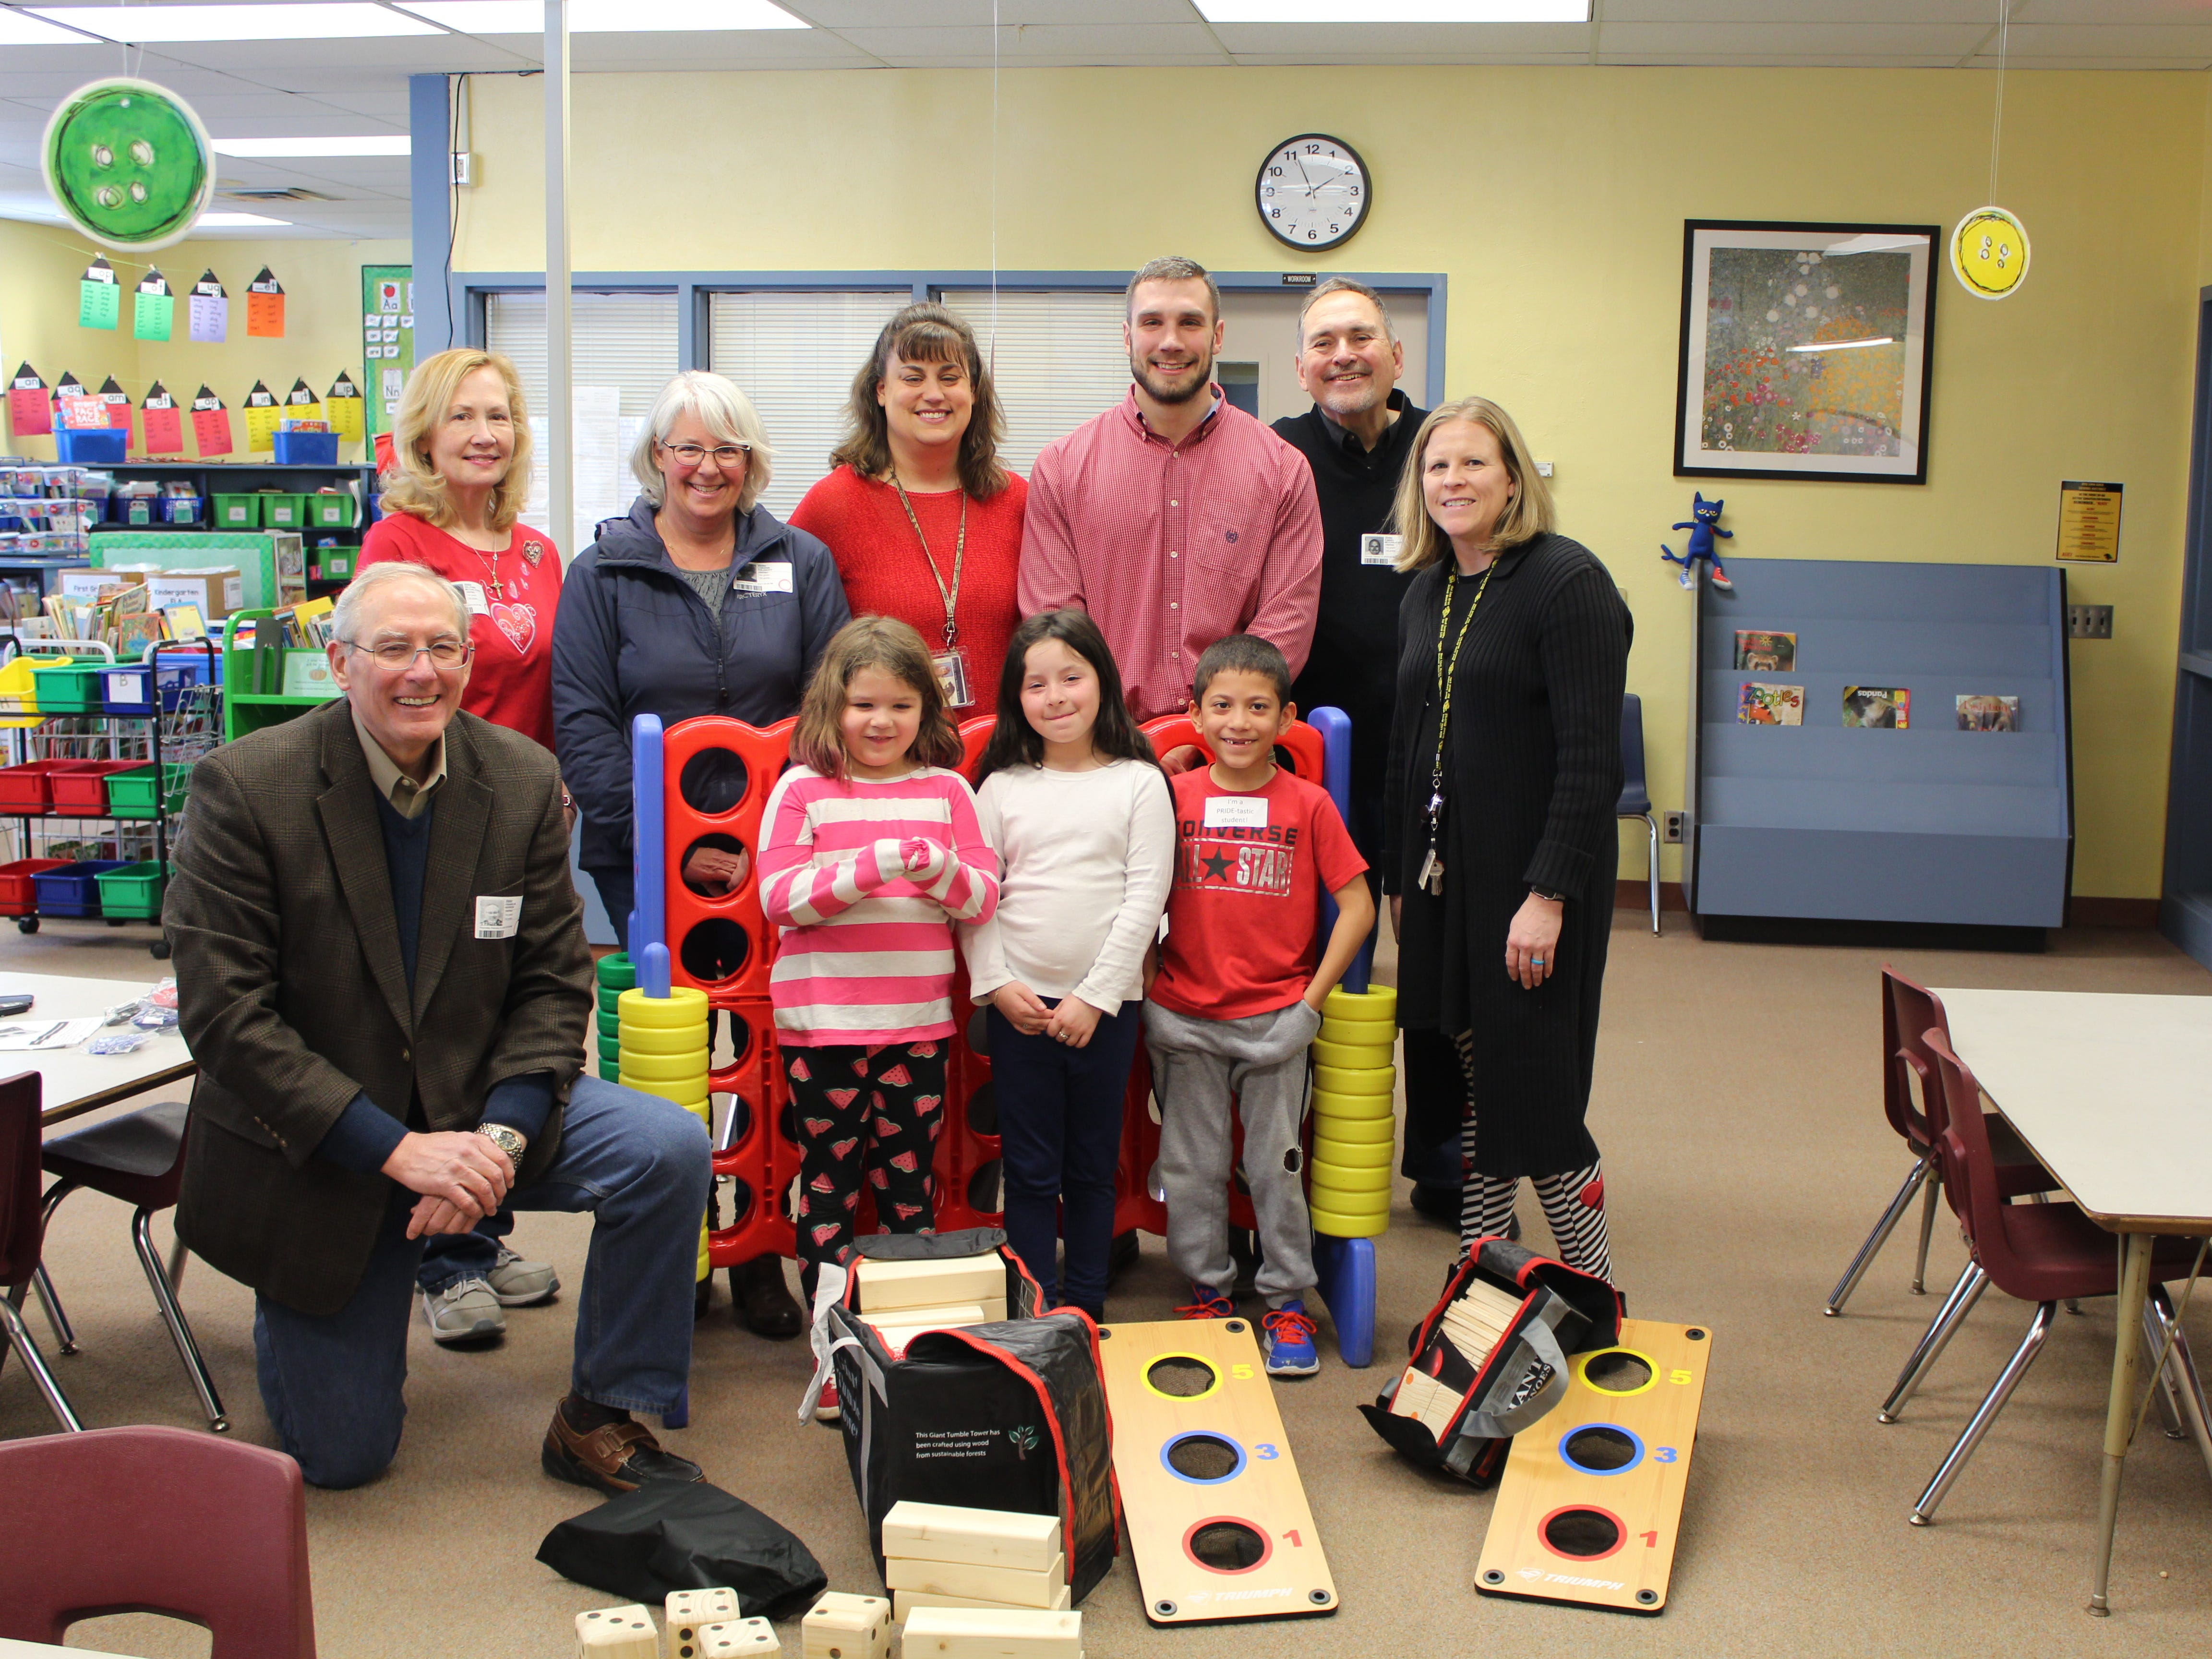 Members of the Rotary Club of Red Lion - Dallastown recently delivered and assembled several pieces of play equipment to the students of the Windsor Manor Elementary School in the Red Lion Area School District. The club used club-generated funds from various fundraising activities and funds from a Rotary District Grant to purchase the items. Club members along with students and school staff look over all the donated items. From left to right are: Club President, Frank Herron; Club members Del McChalicher and Lori Polakoff, Windsor Manor Teachers Julie Brunetto and Levi Myers, Club member Kim McChalicher, and WIndsor Manor Principal Sheila Hughes. Students from left to right are: Christy Whitcraft, Alaina Guzman, and J'Maani Markline. submitted